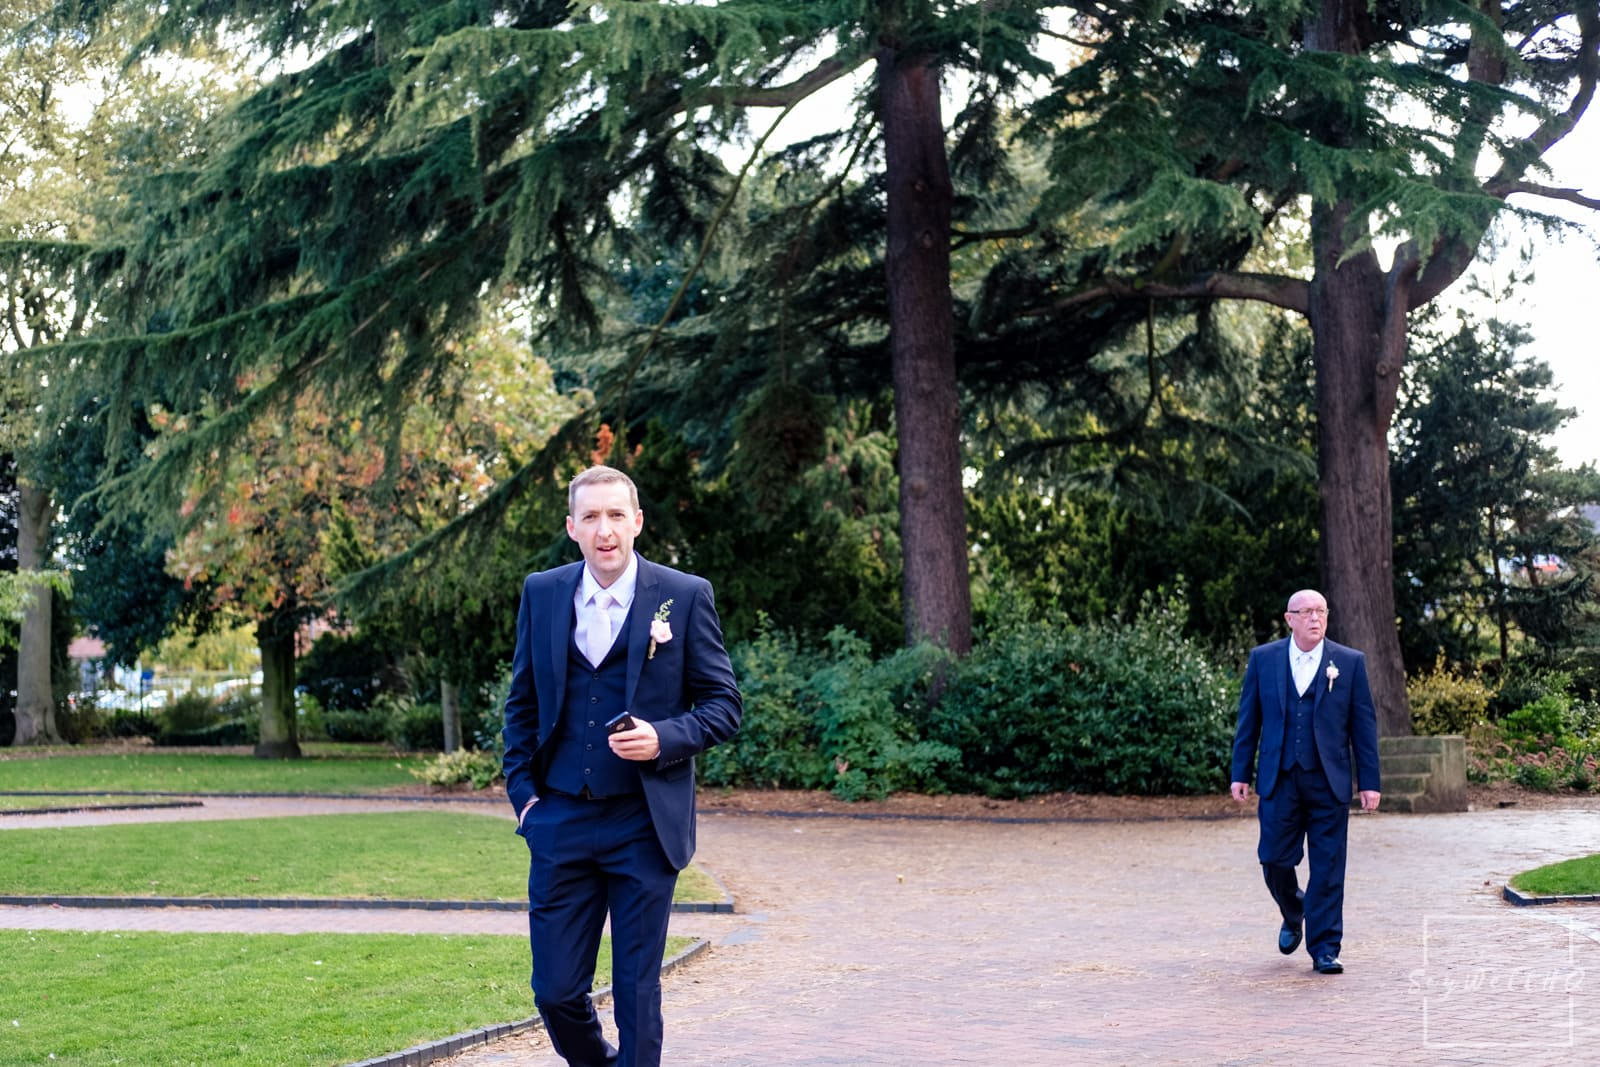 West Bridgford Wedding Photography + Bridgford Hall Wedding Photographer + Groom arrives for the civil wedding ceremony